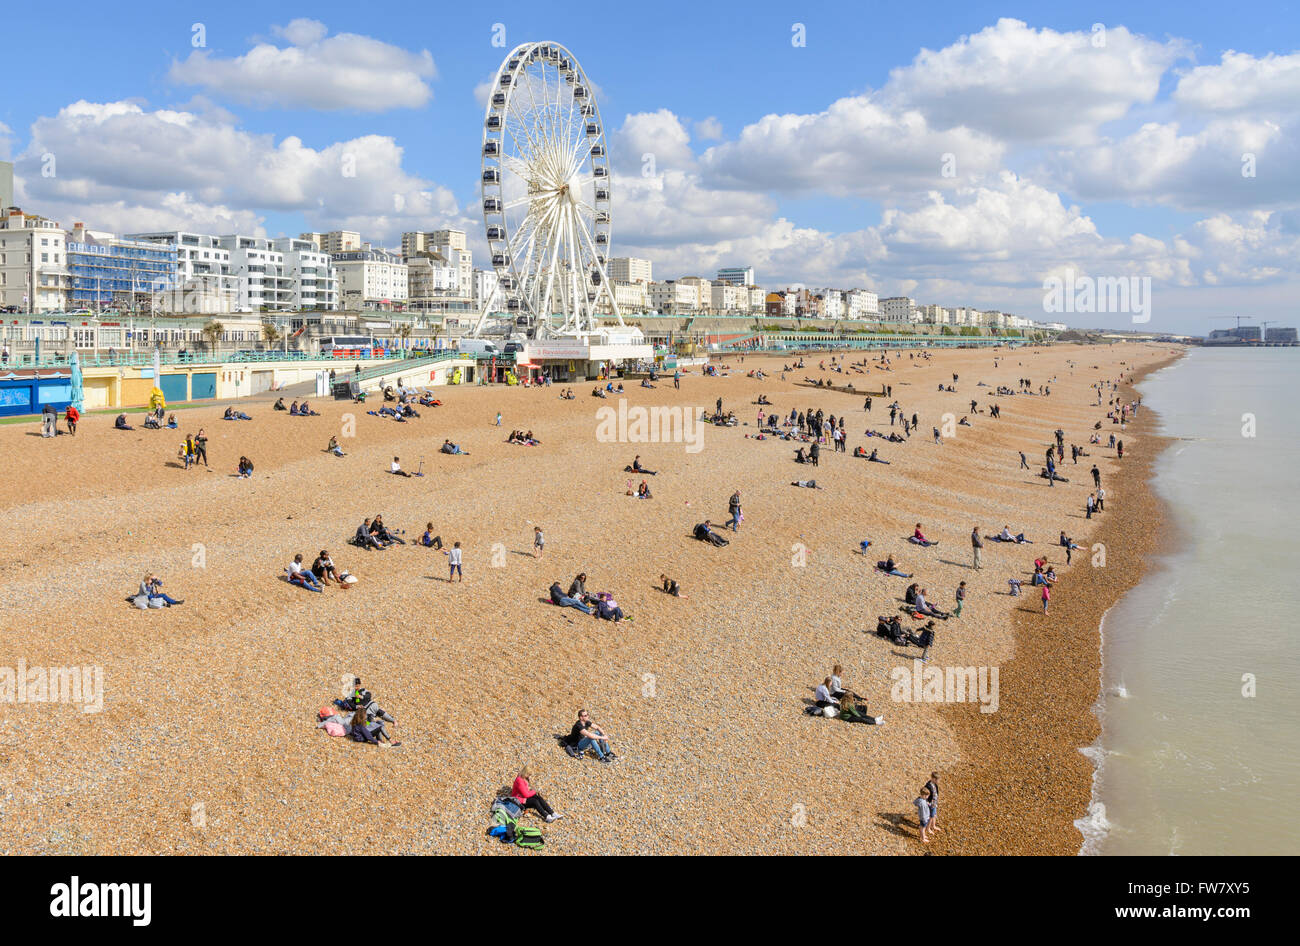 People on the Brighton beach on a sunny day in early Spring, in Brighton, East Sussex, England, UK. - Stock Image